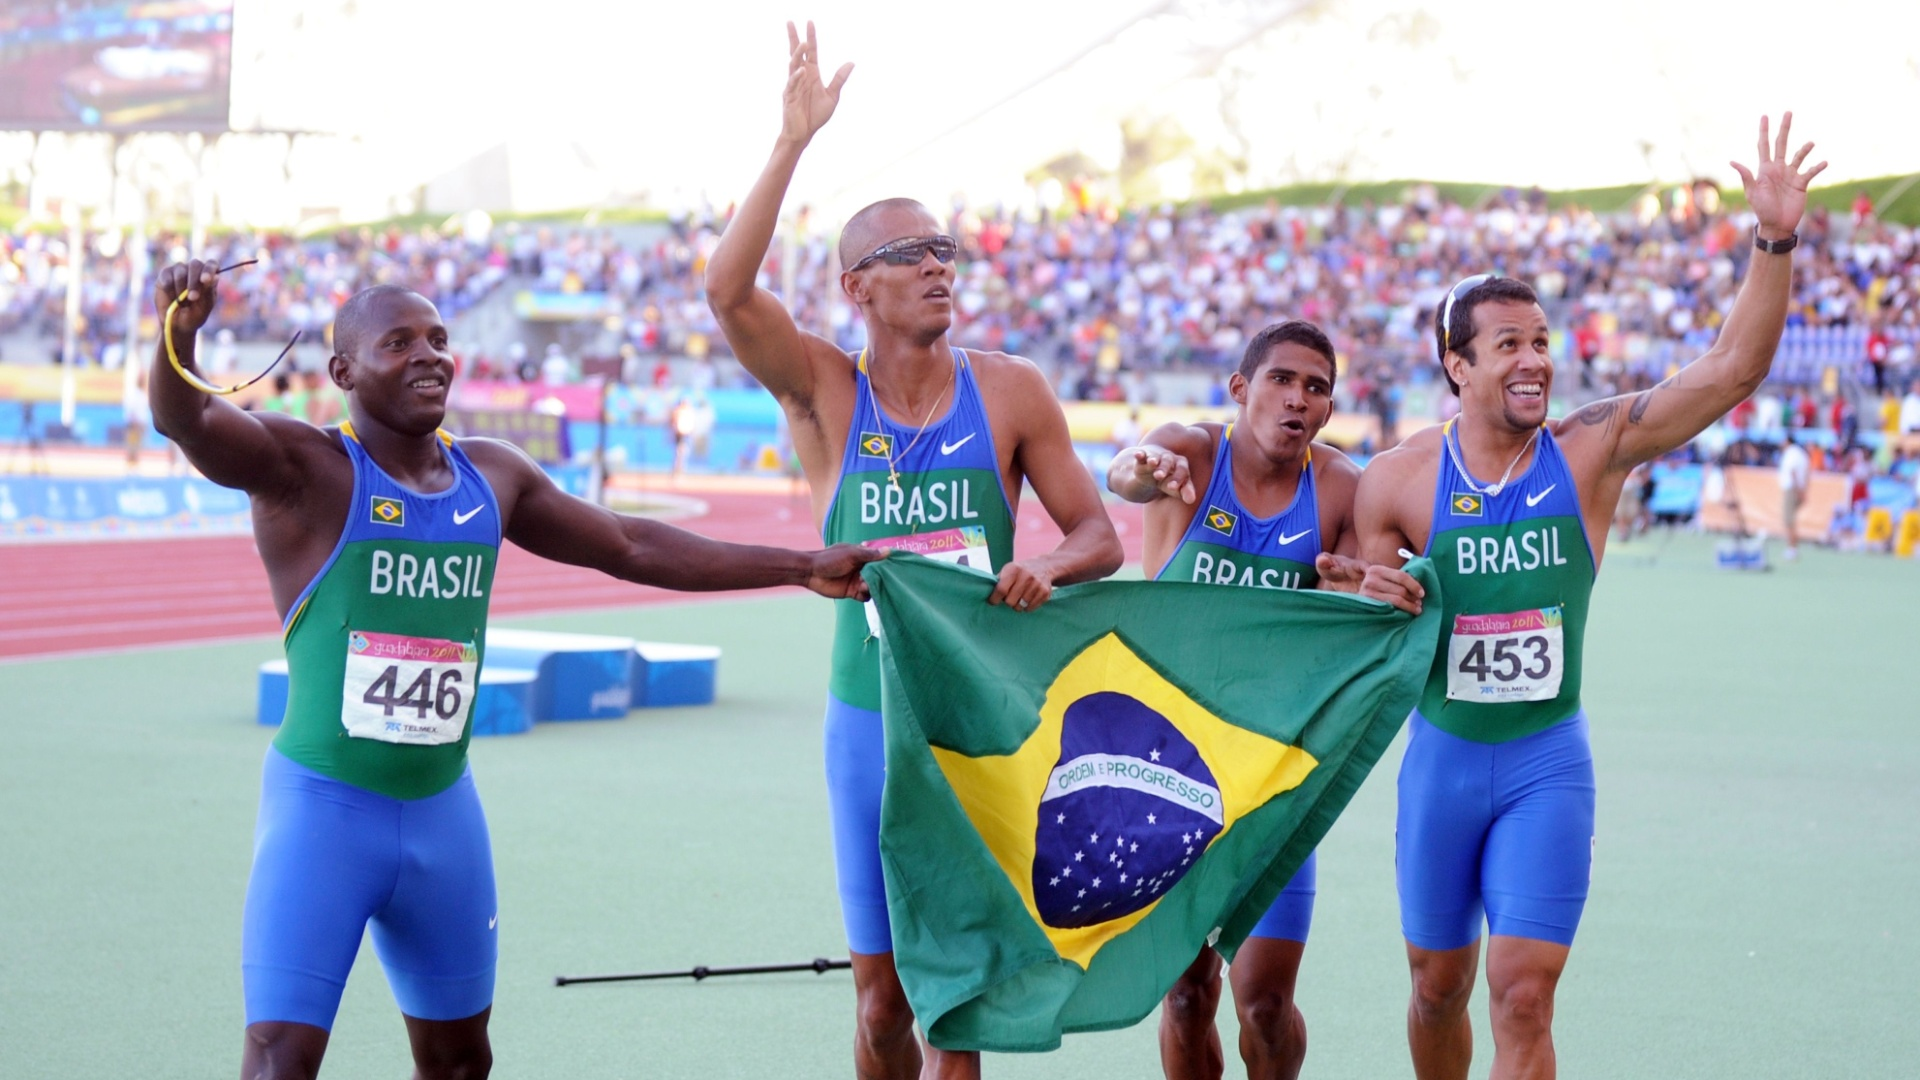 Brasil igualou o recorde panamericano no revezamento 4x100 m, com o tempo de 38s18 (28/10/2011)